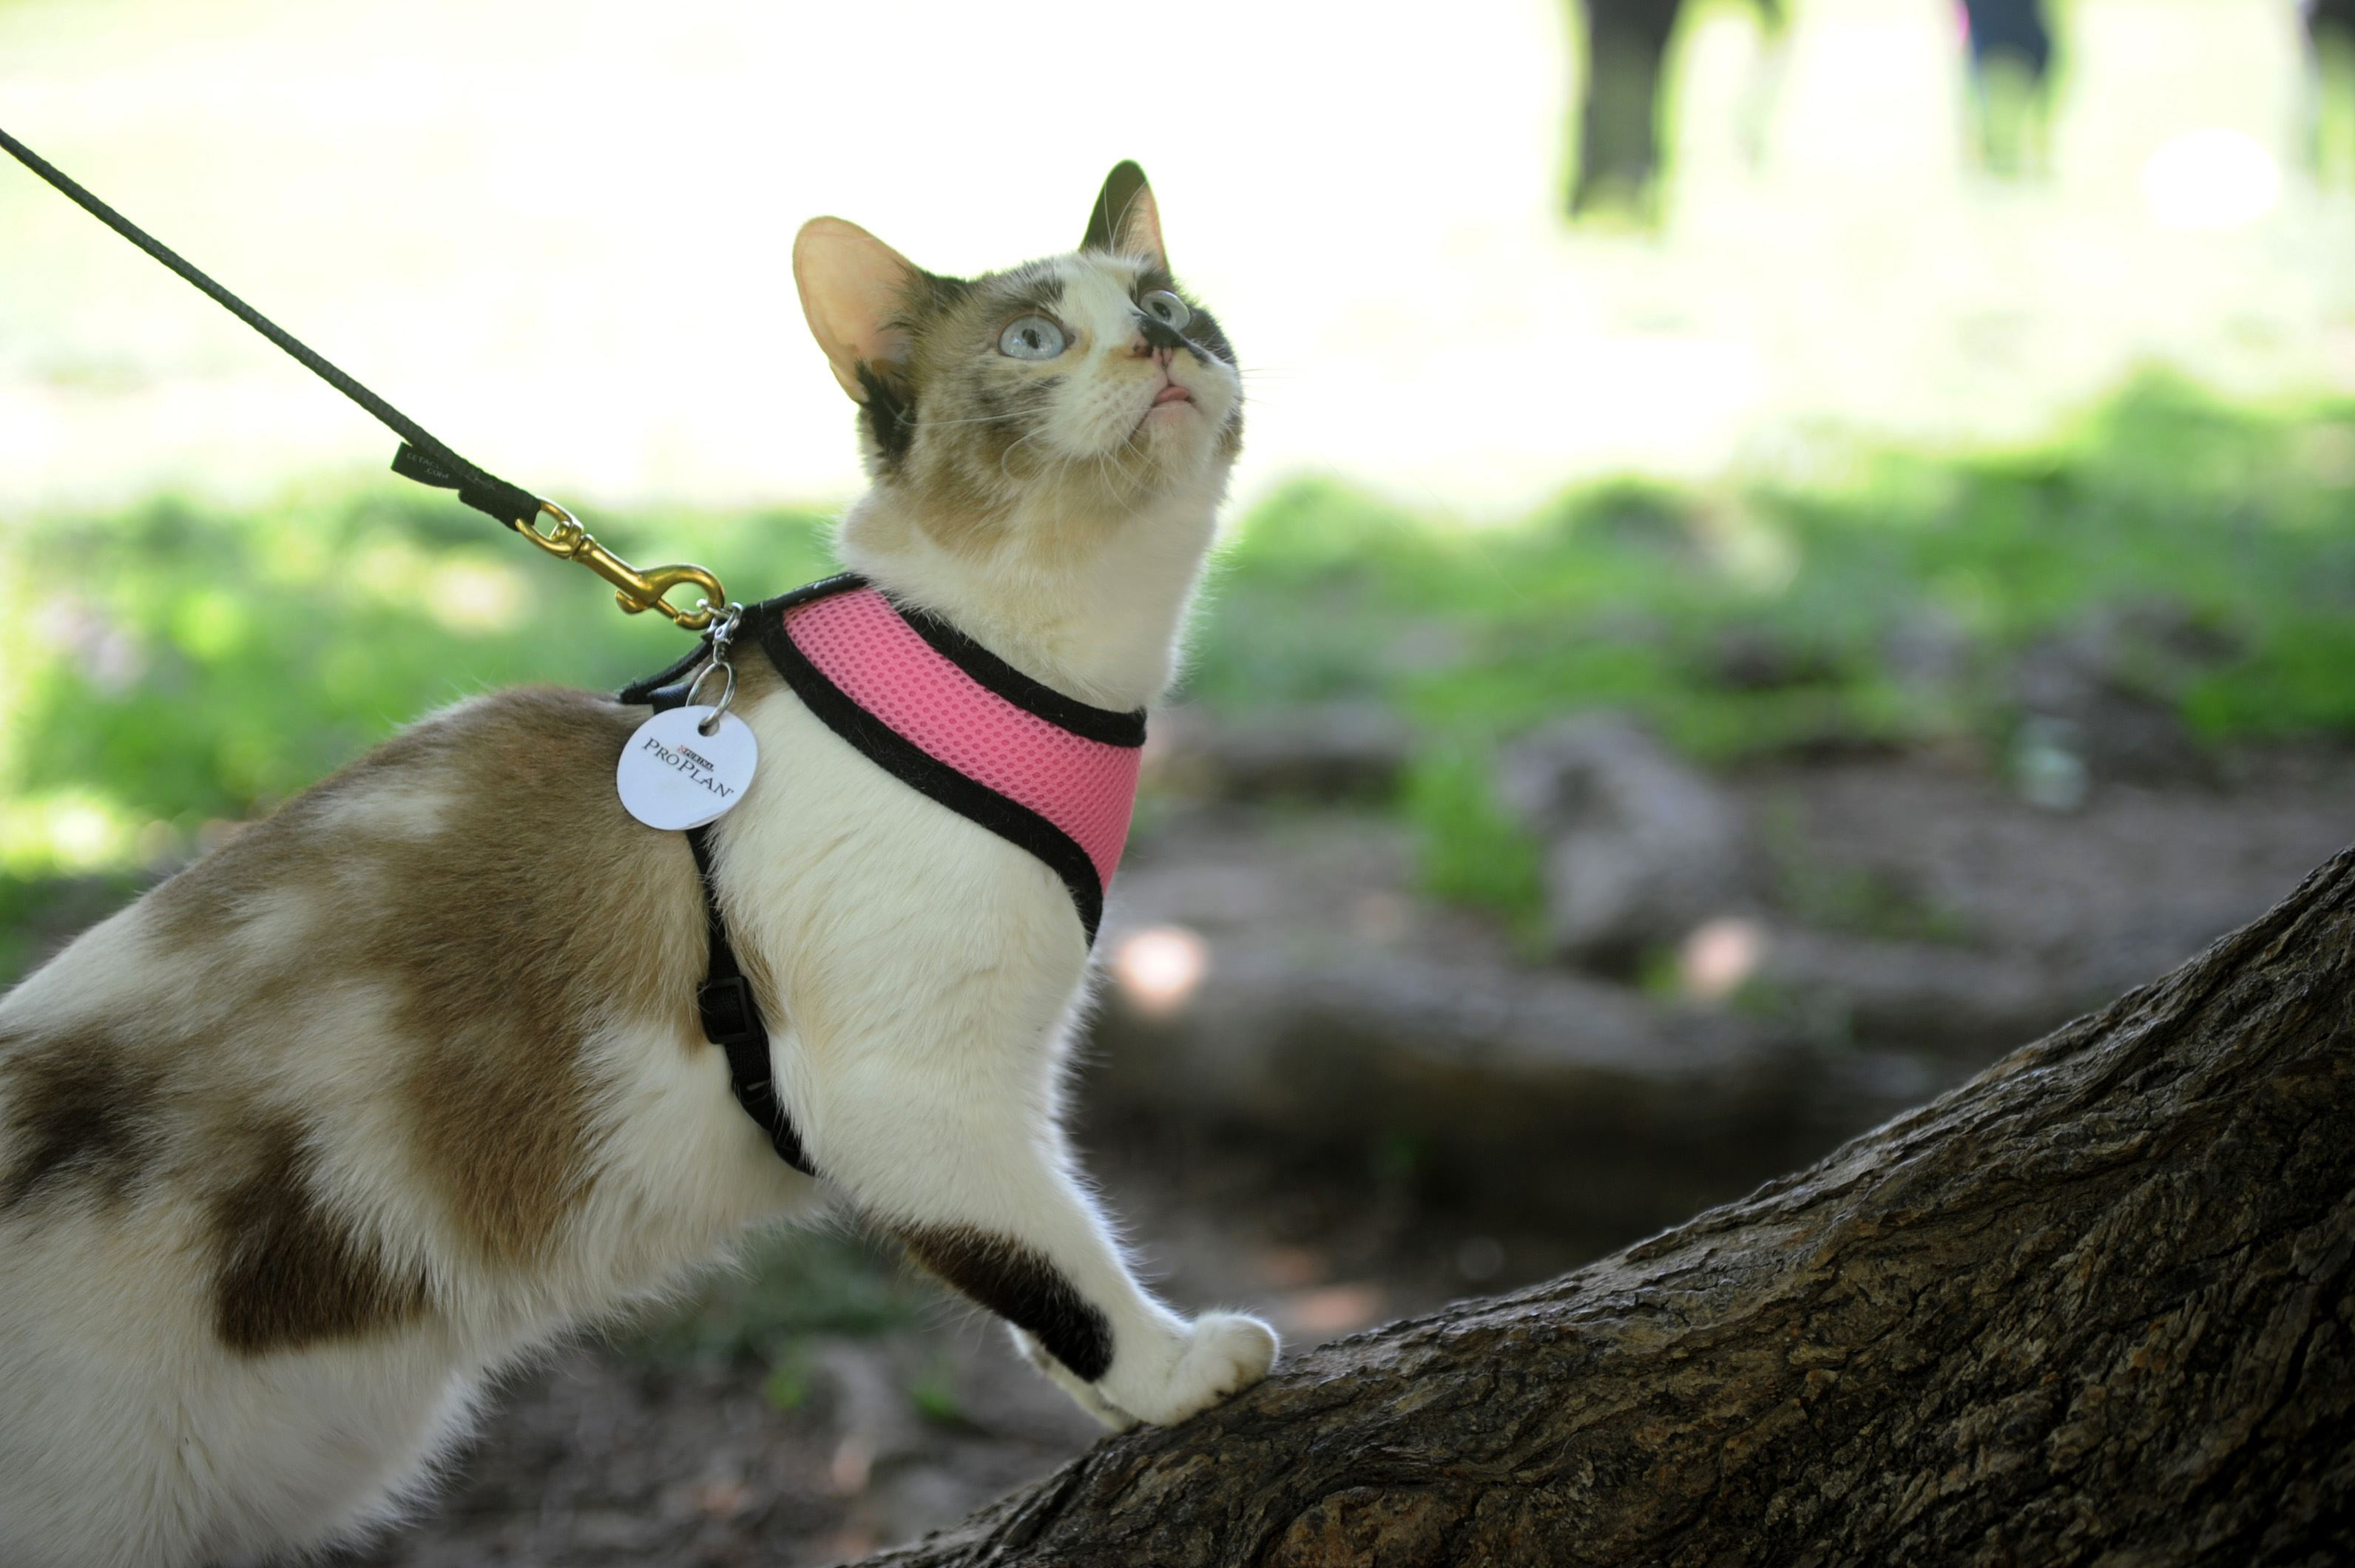 City May Start Requiring Leashes For Cats